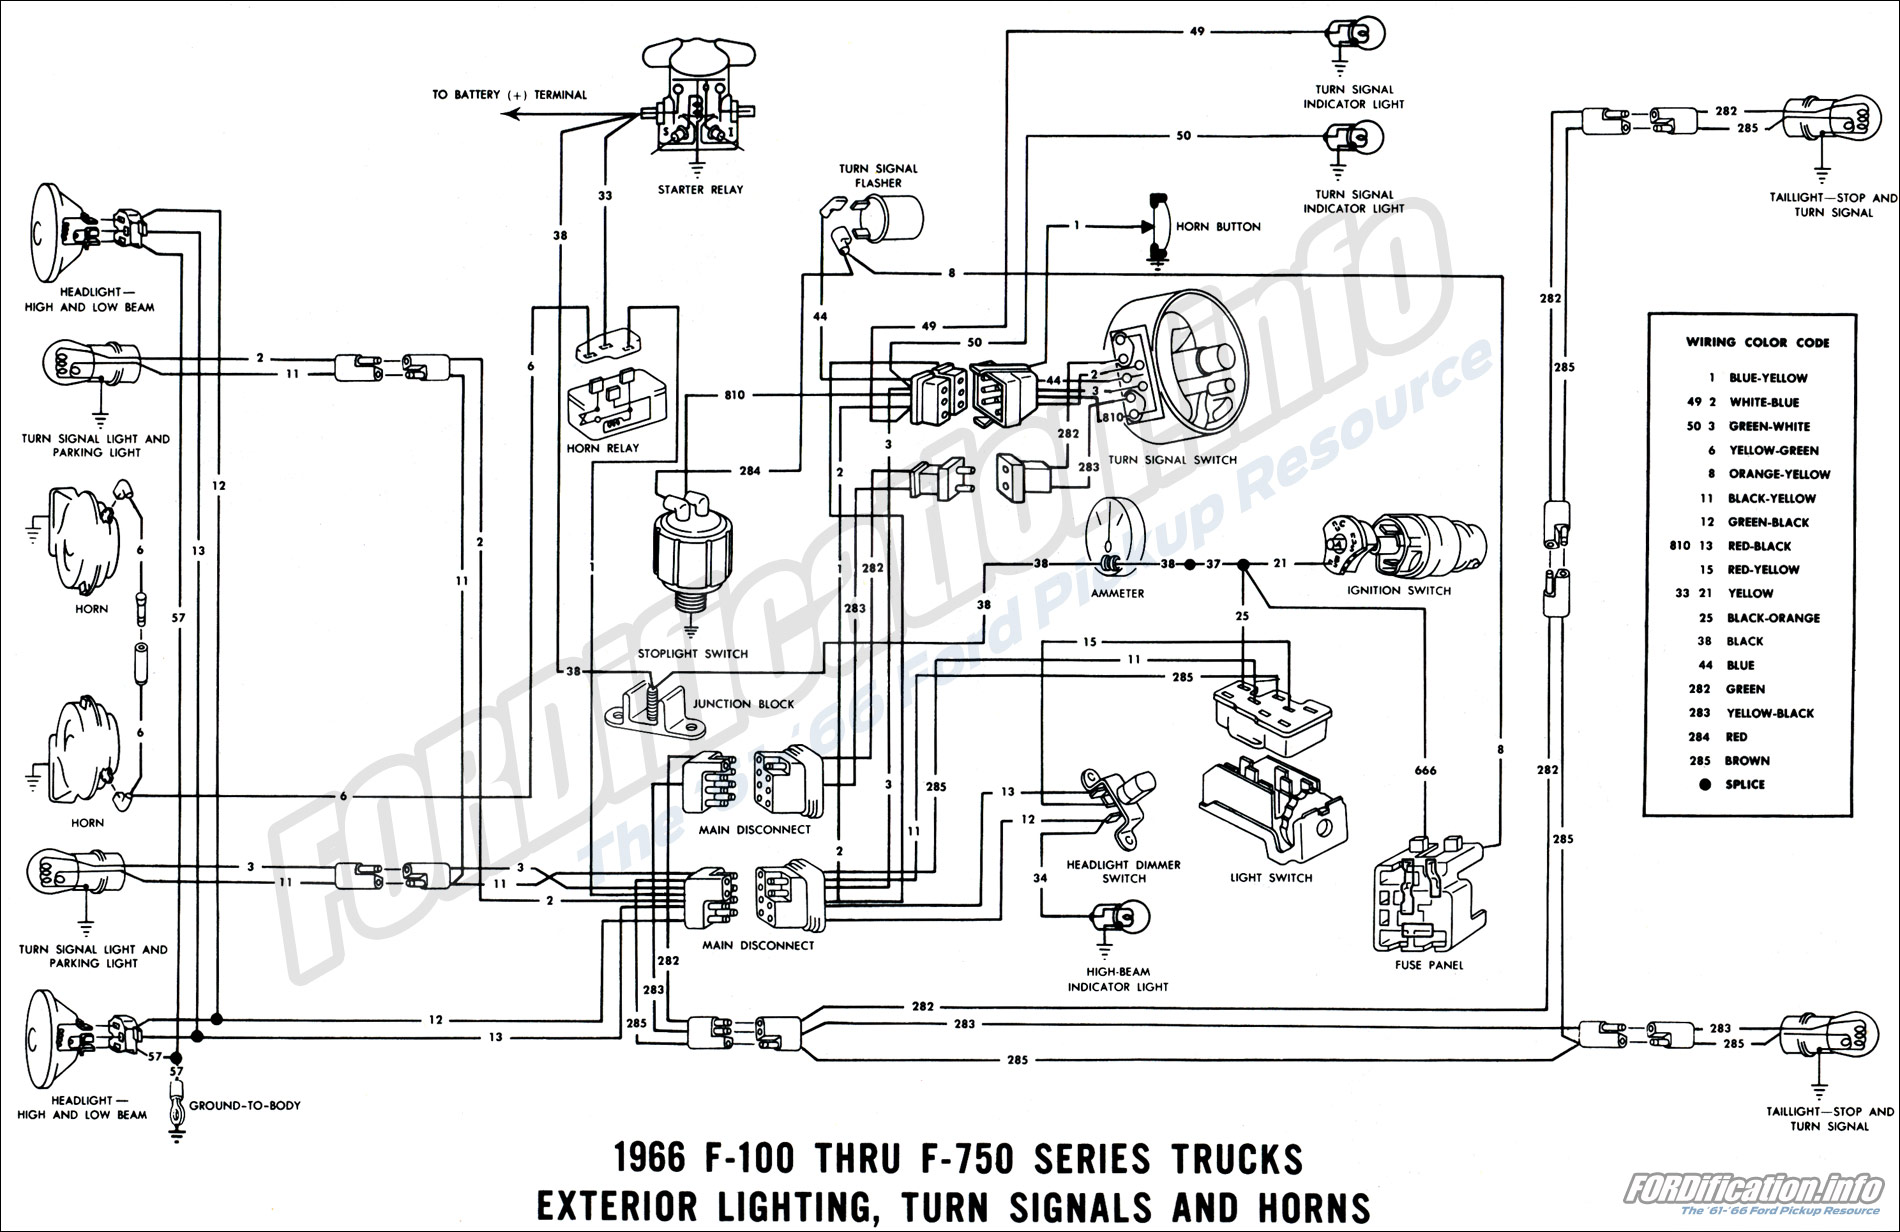 66 telecaster wiring diagram seymour duncan build 66 ford wiring diagram 66 f100 wiring ignition switch diagram - best place to ...